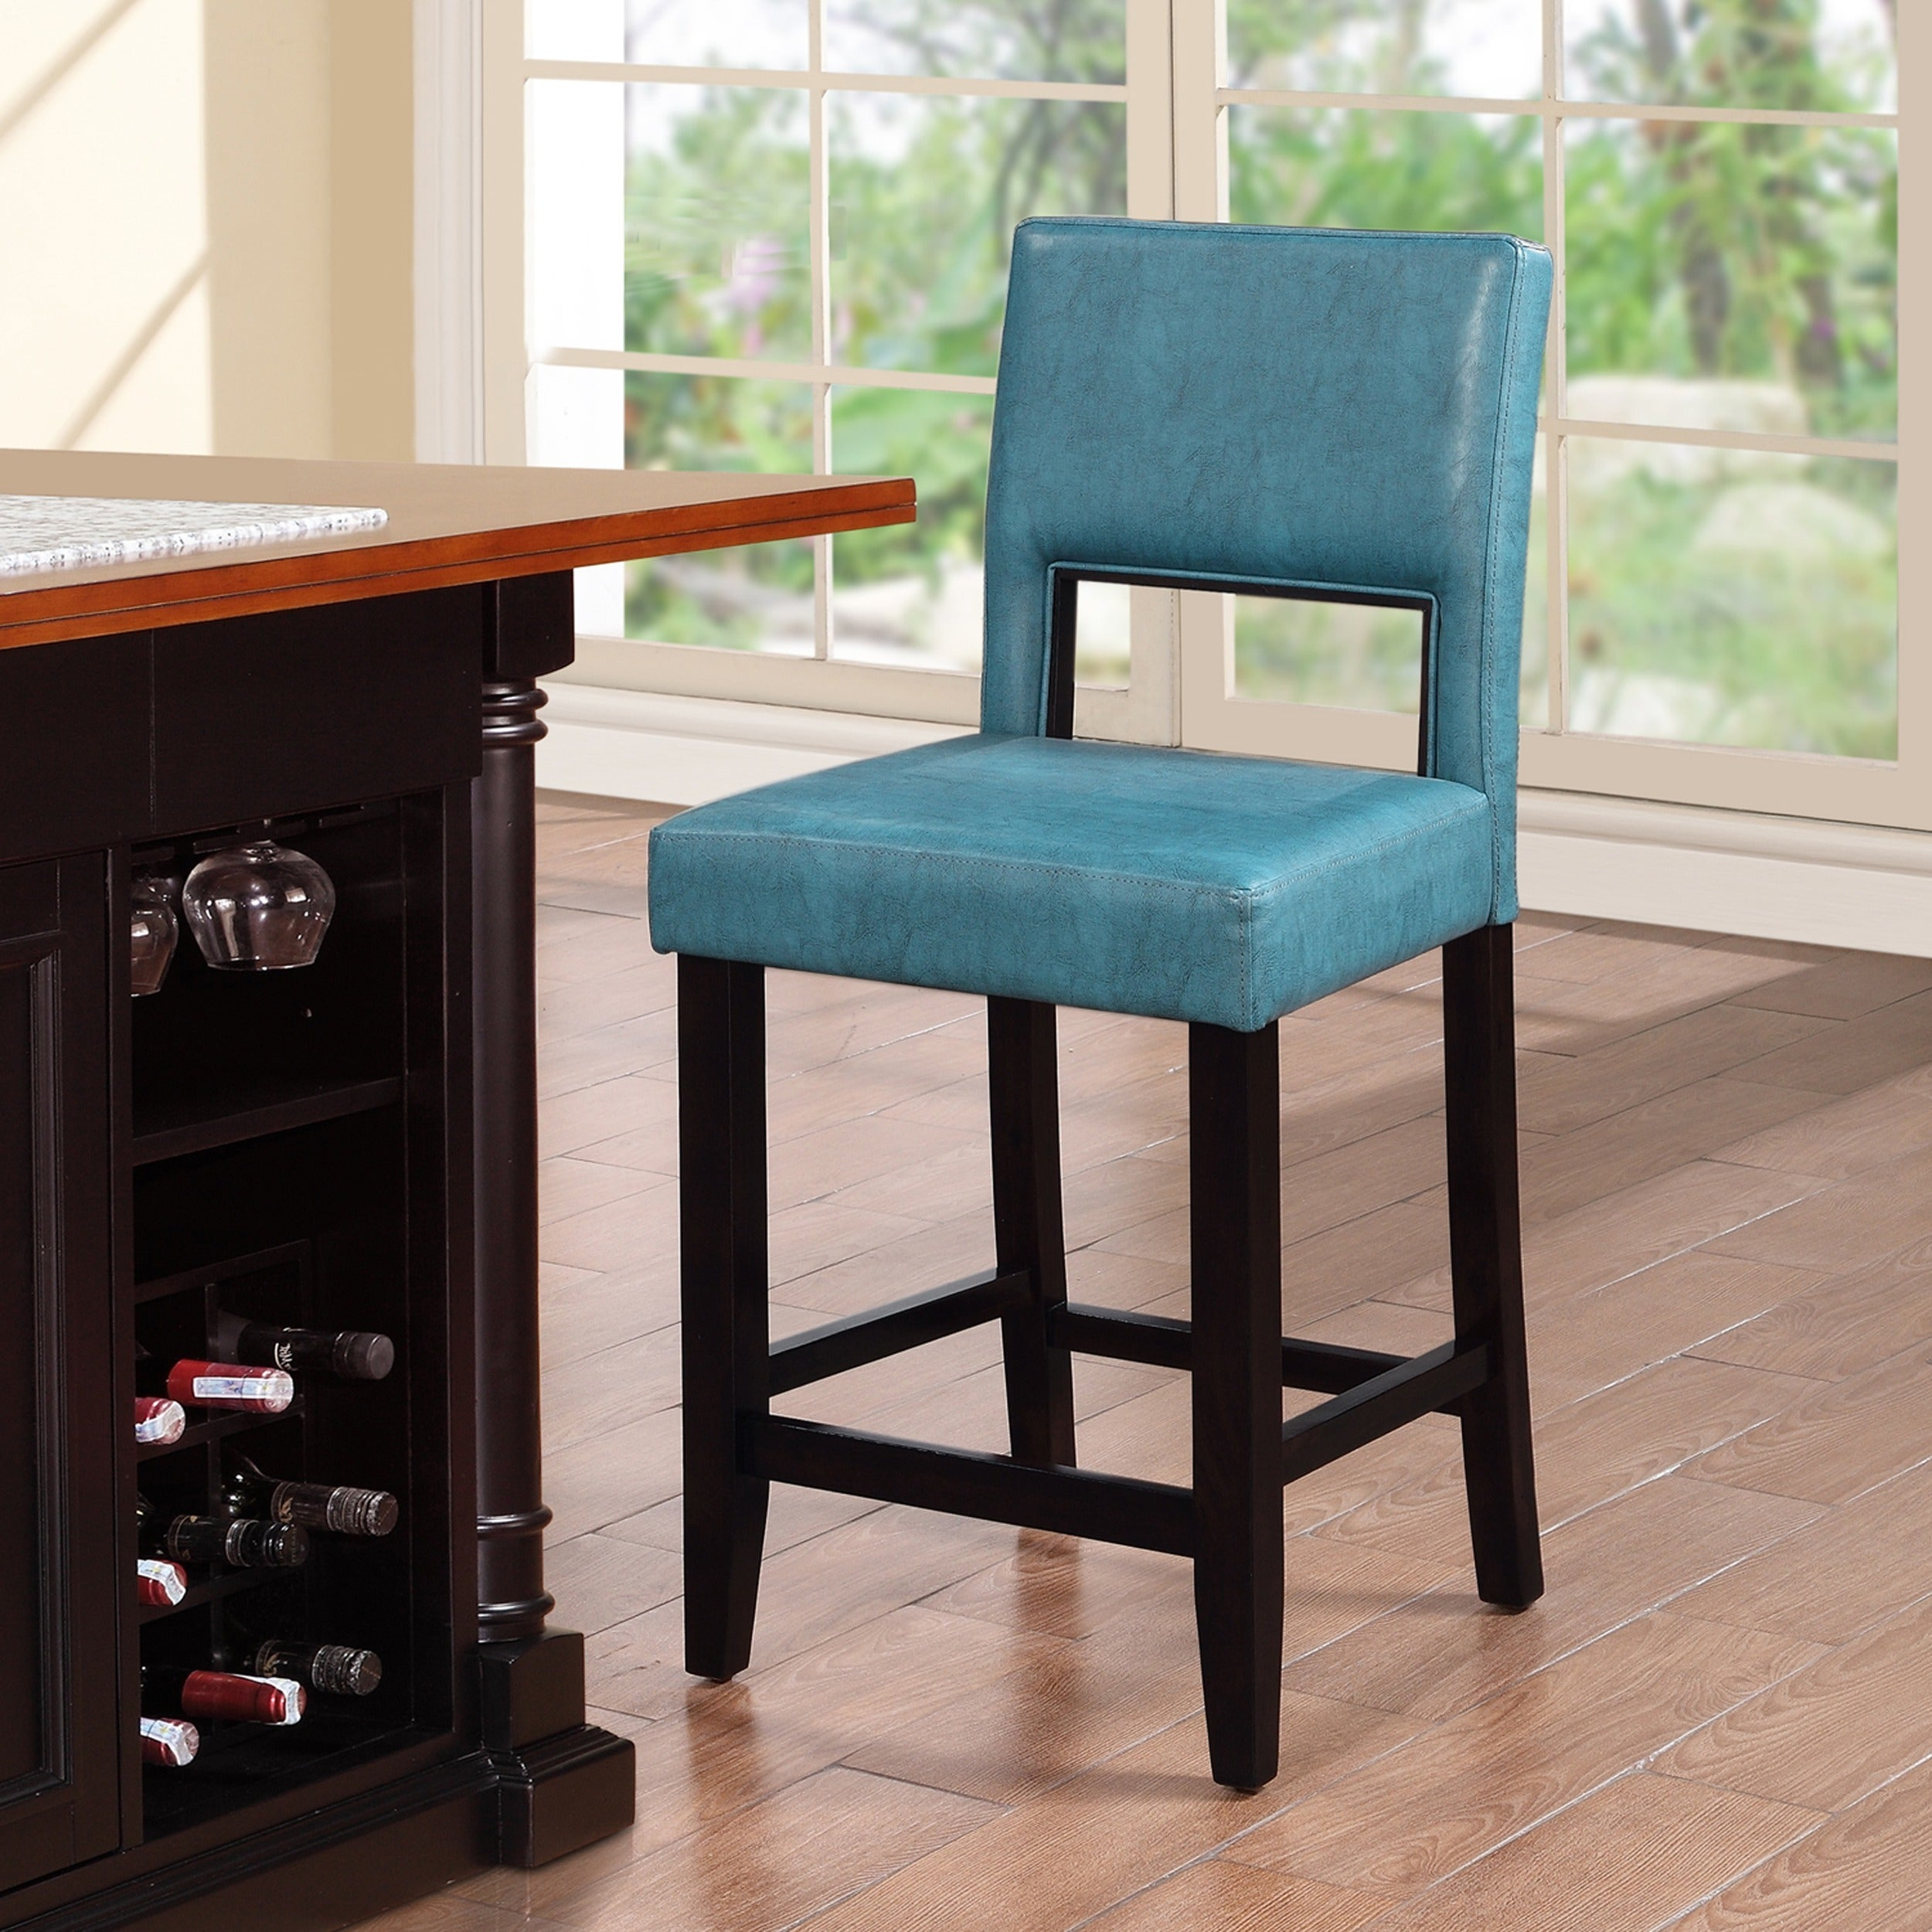 Shop Linon Zeta Ocean Blue Fabric Stationary Counter Stool - Free ...